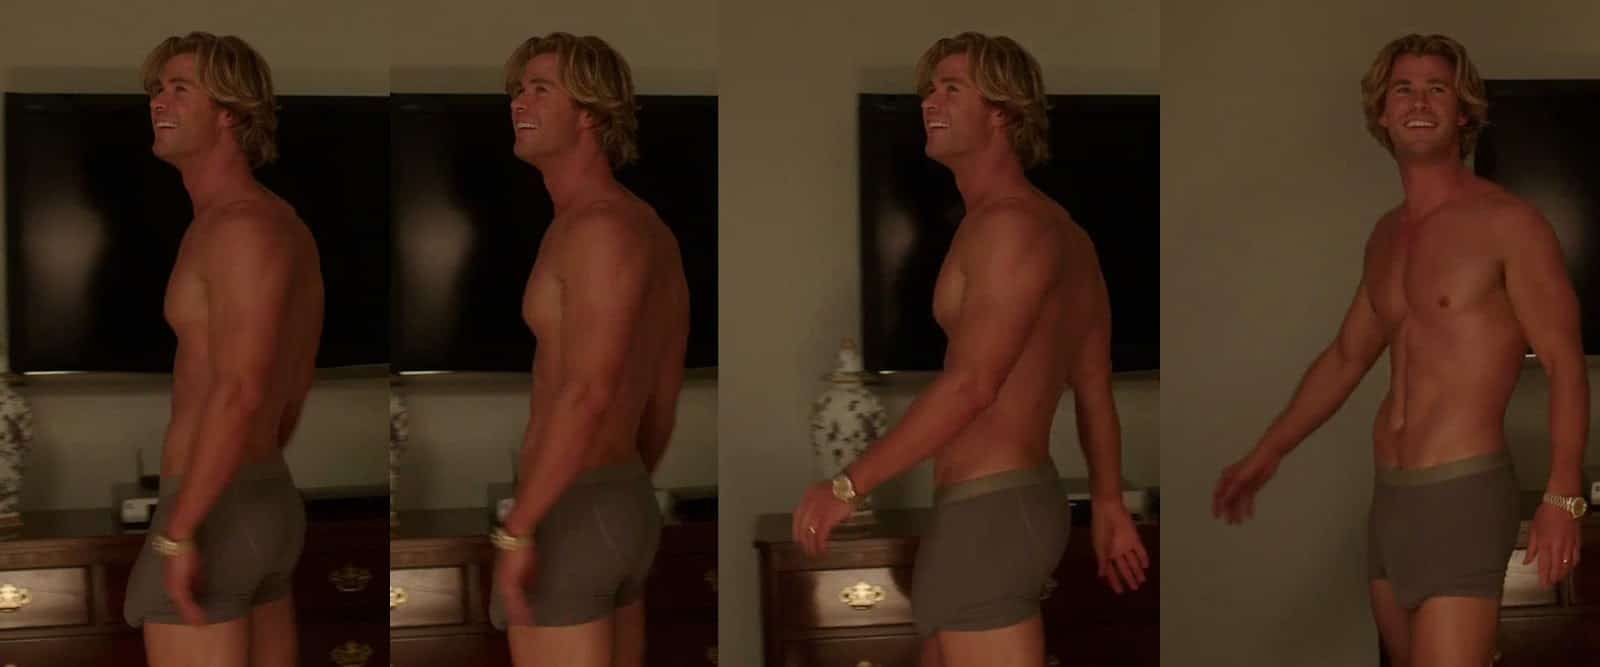 Chris Hemsworth cock in boxers exposed